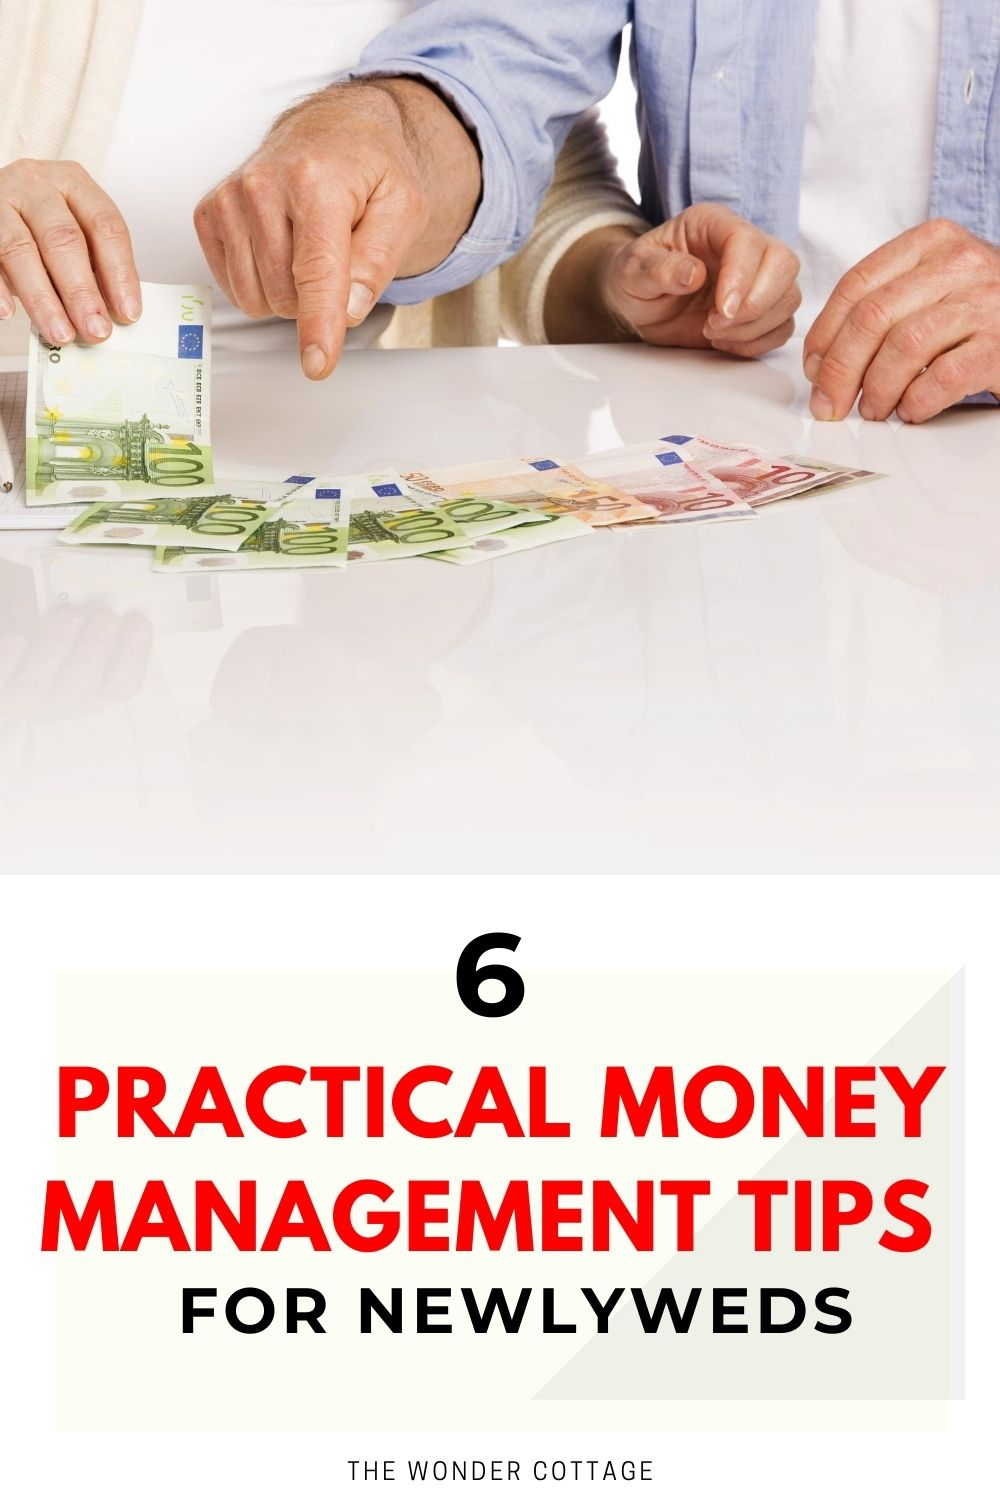 6 practical money management tips for newly weds